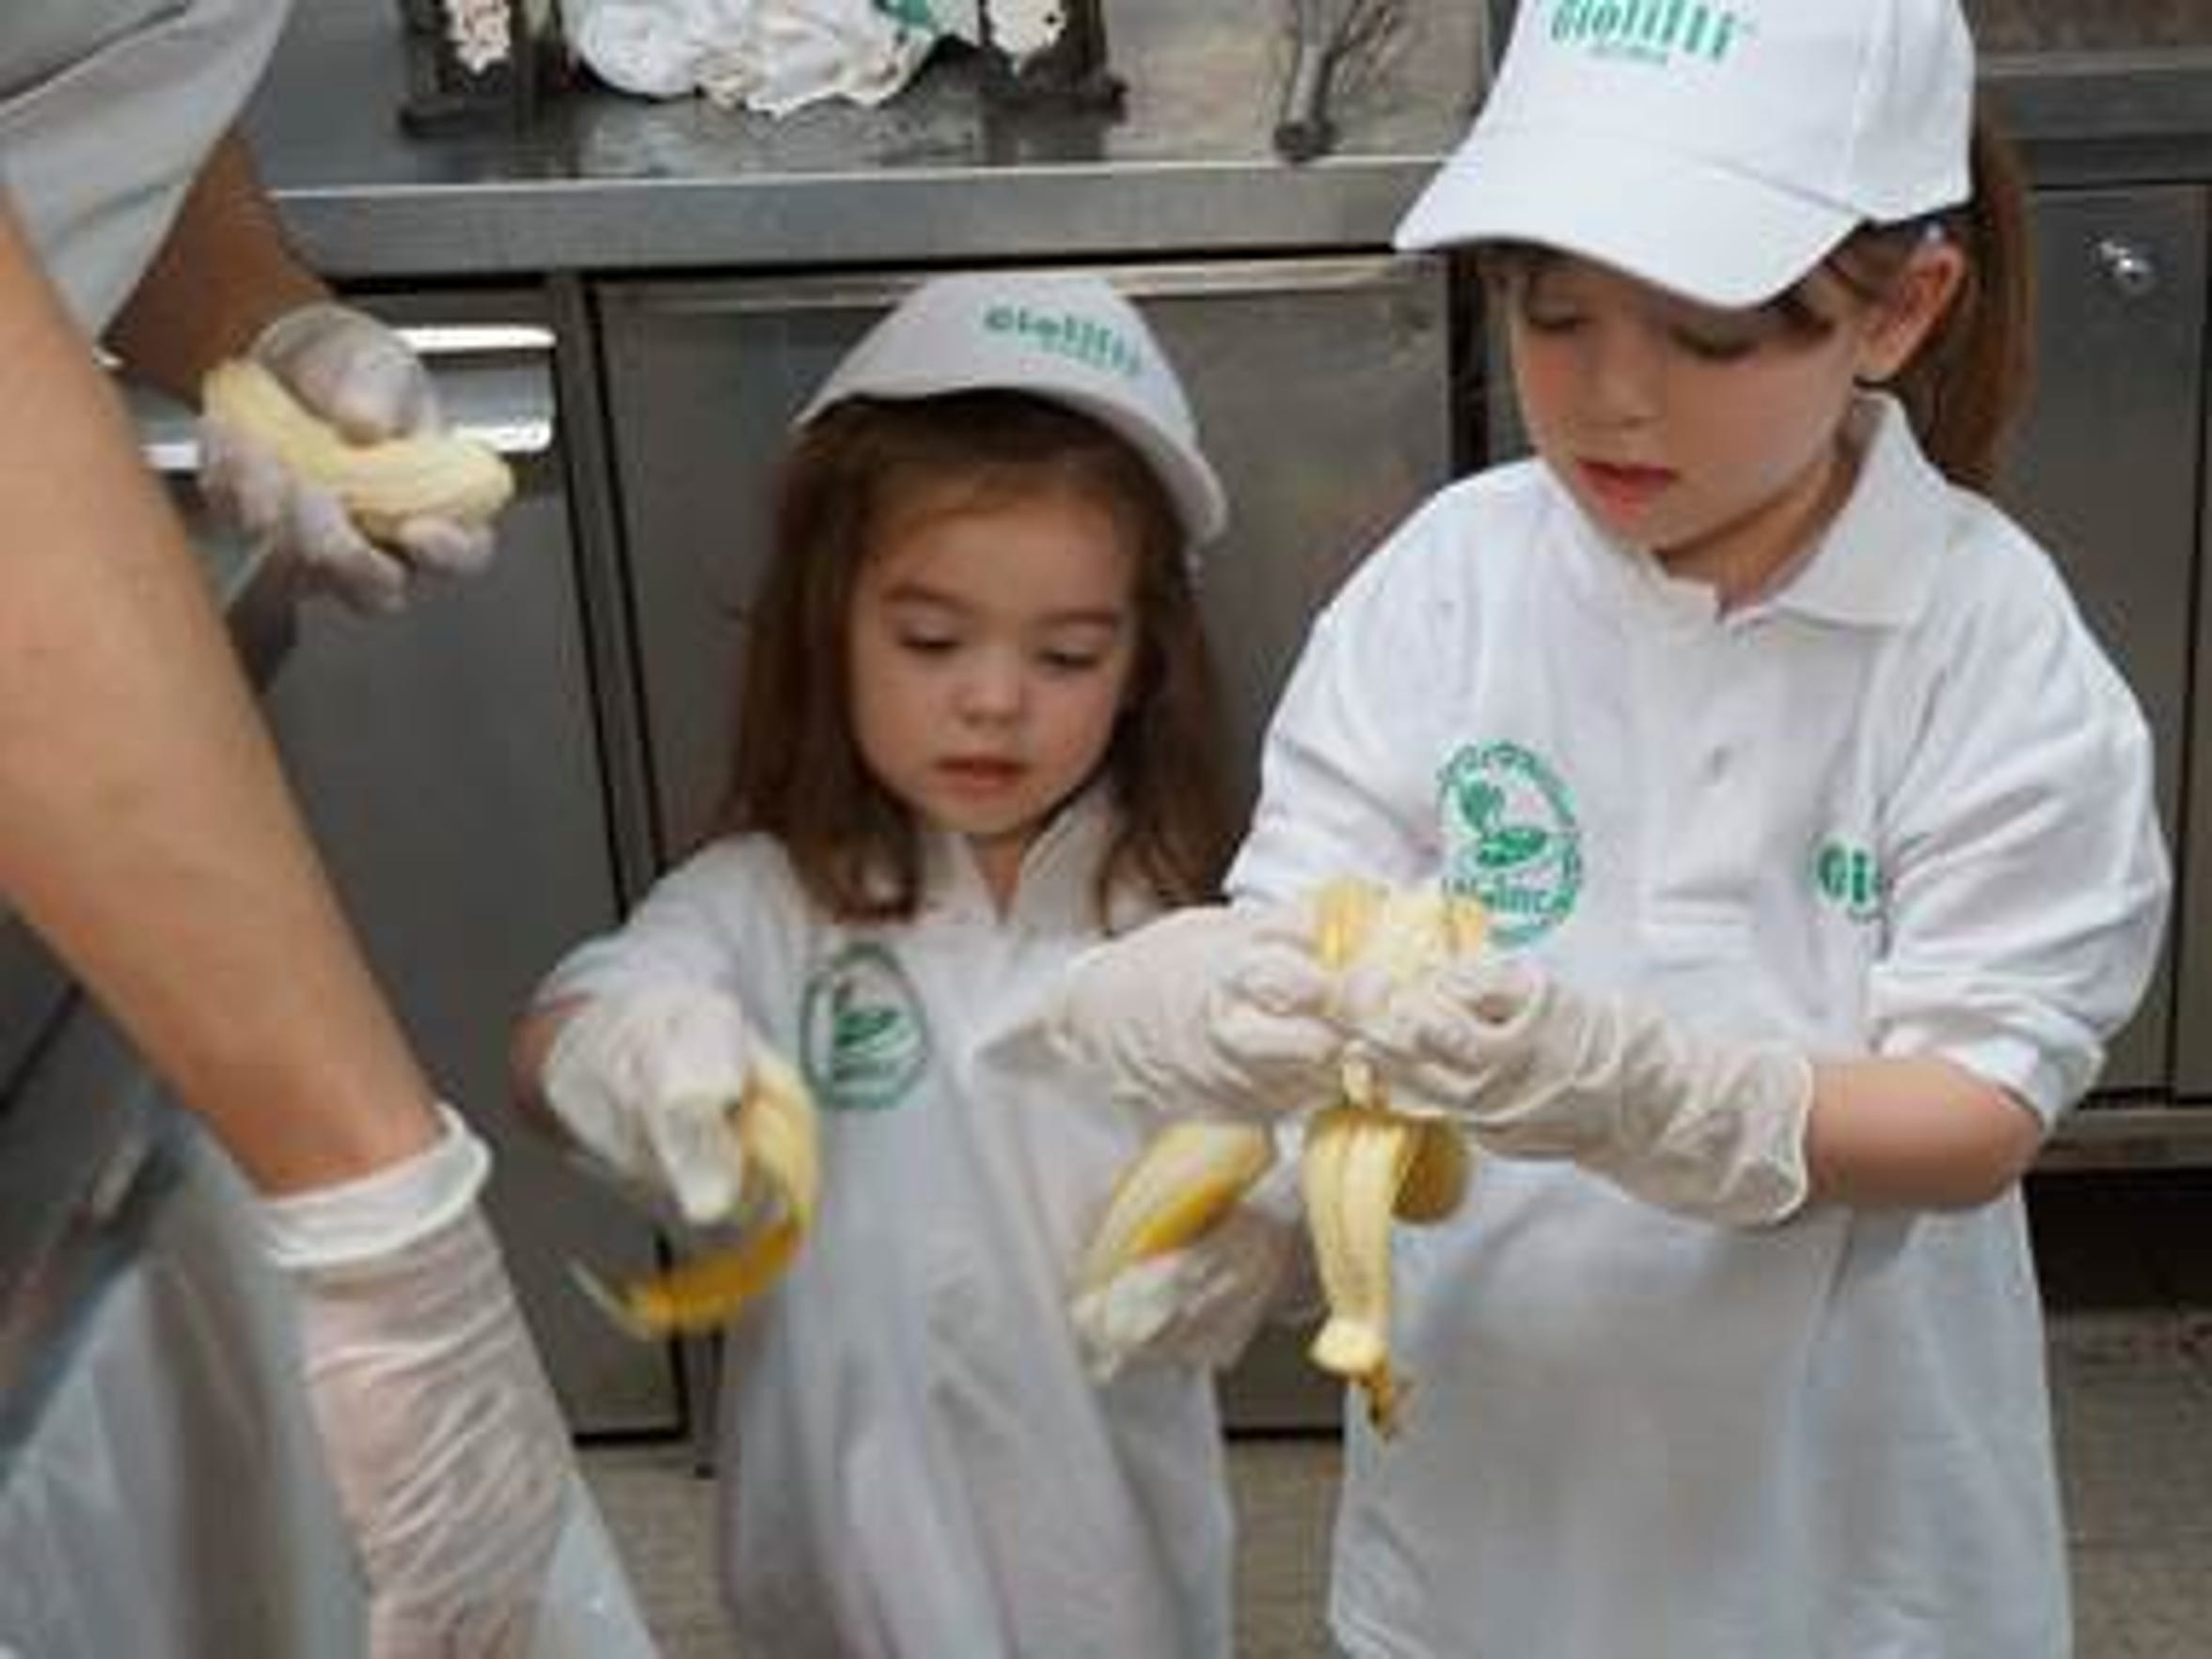 Lizzy Myers and her sister Kayla peel 9 pounds of bananas to make Giolitti's famous banana gelato.